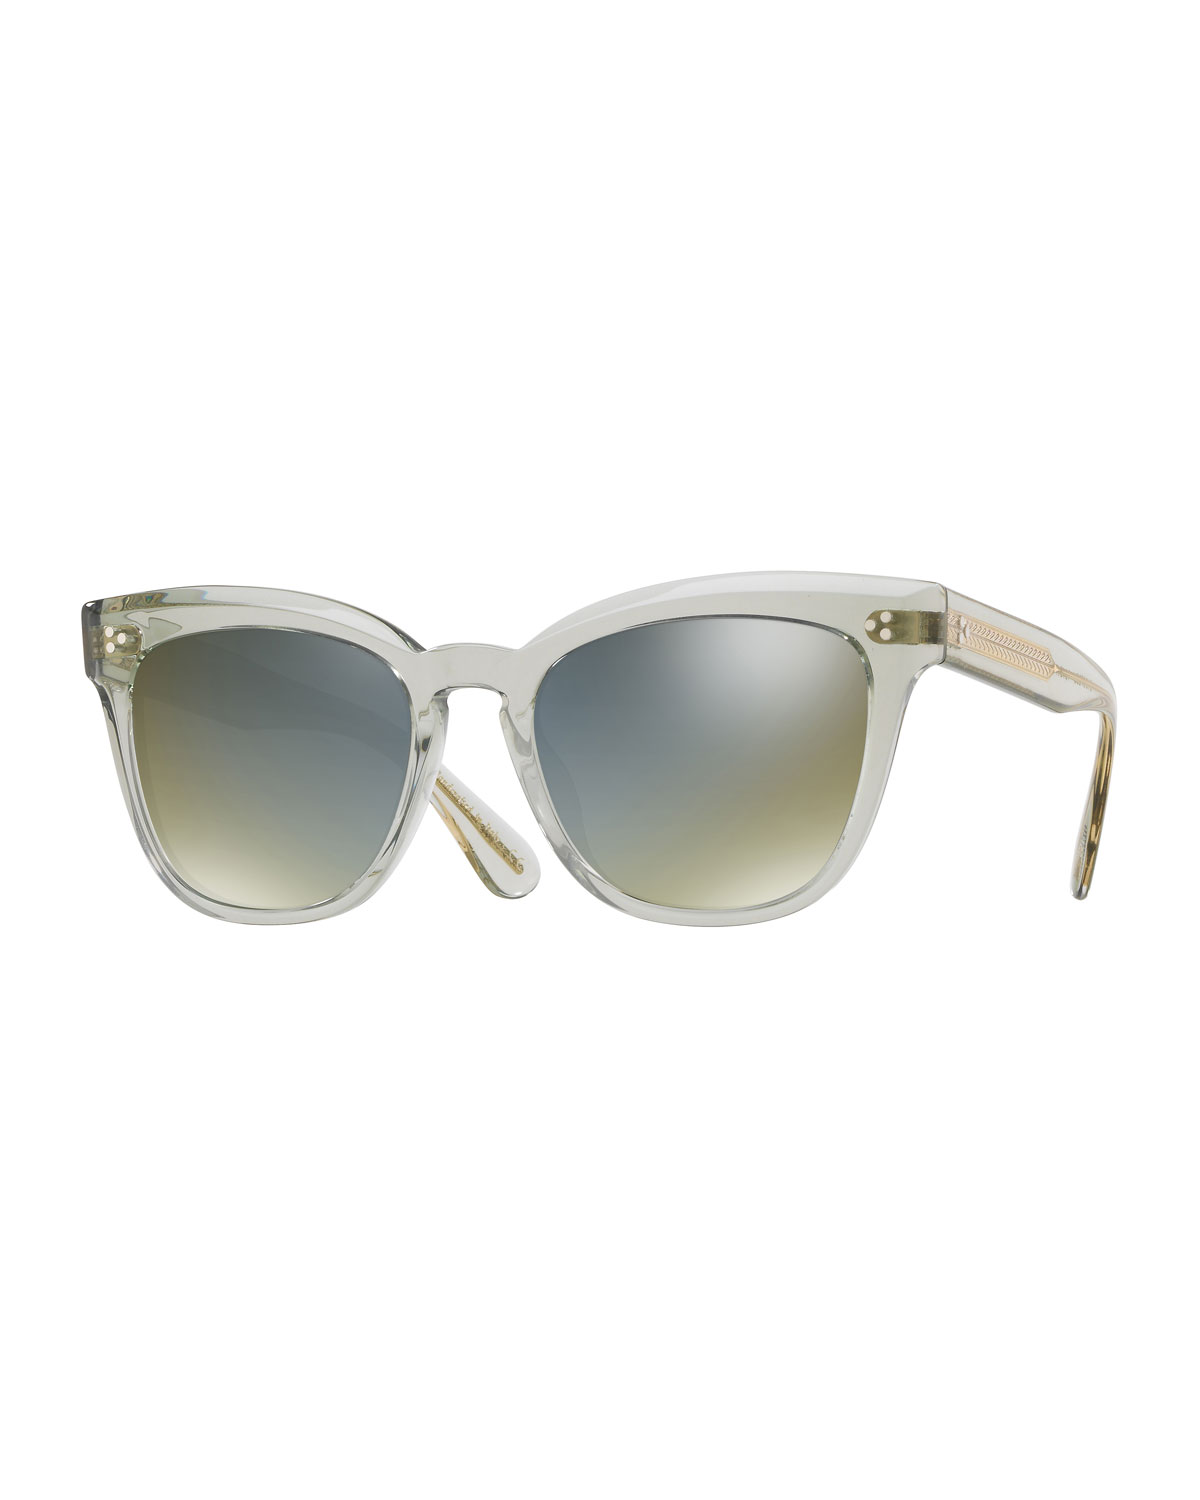 54987ad79ef57 Oliver Peoples Marianela Rounded Plastic Mirrored Sunglasses ...